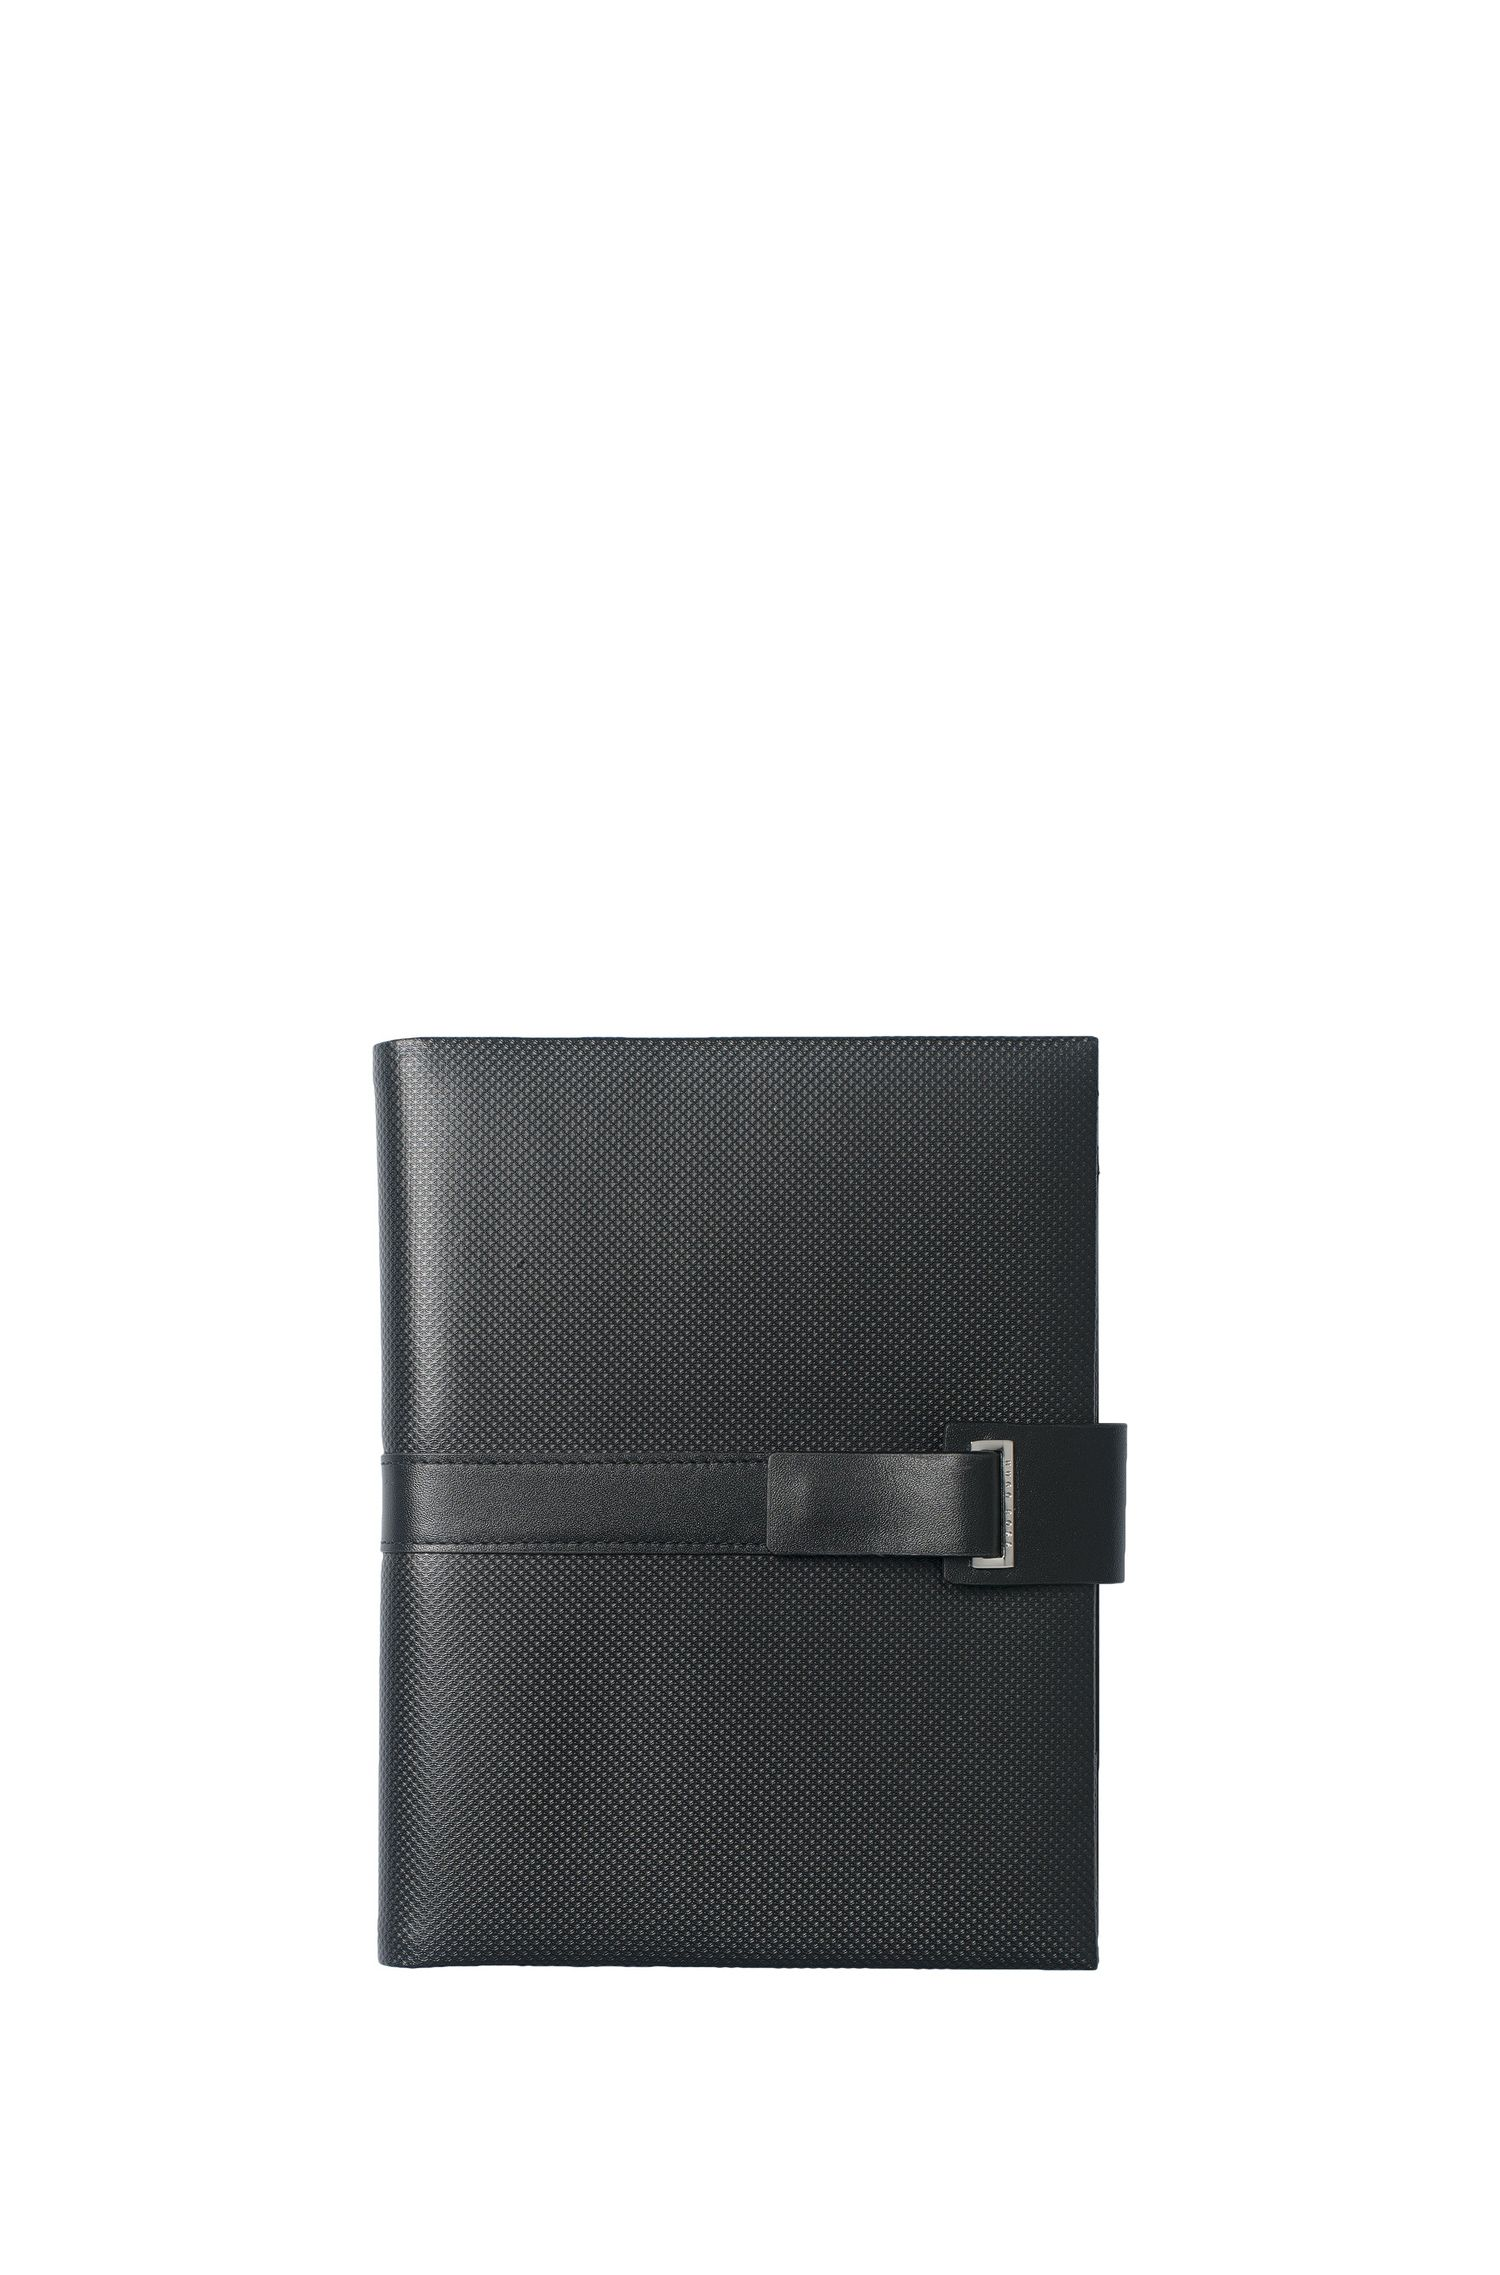 Matt black leather A5 folder with notepad